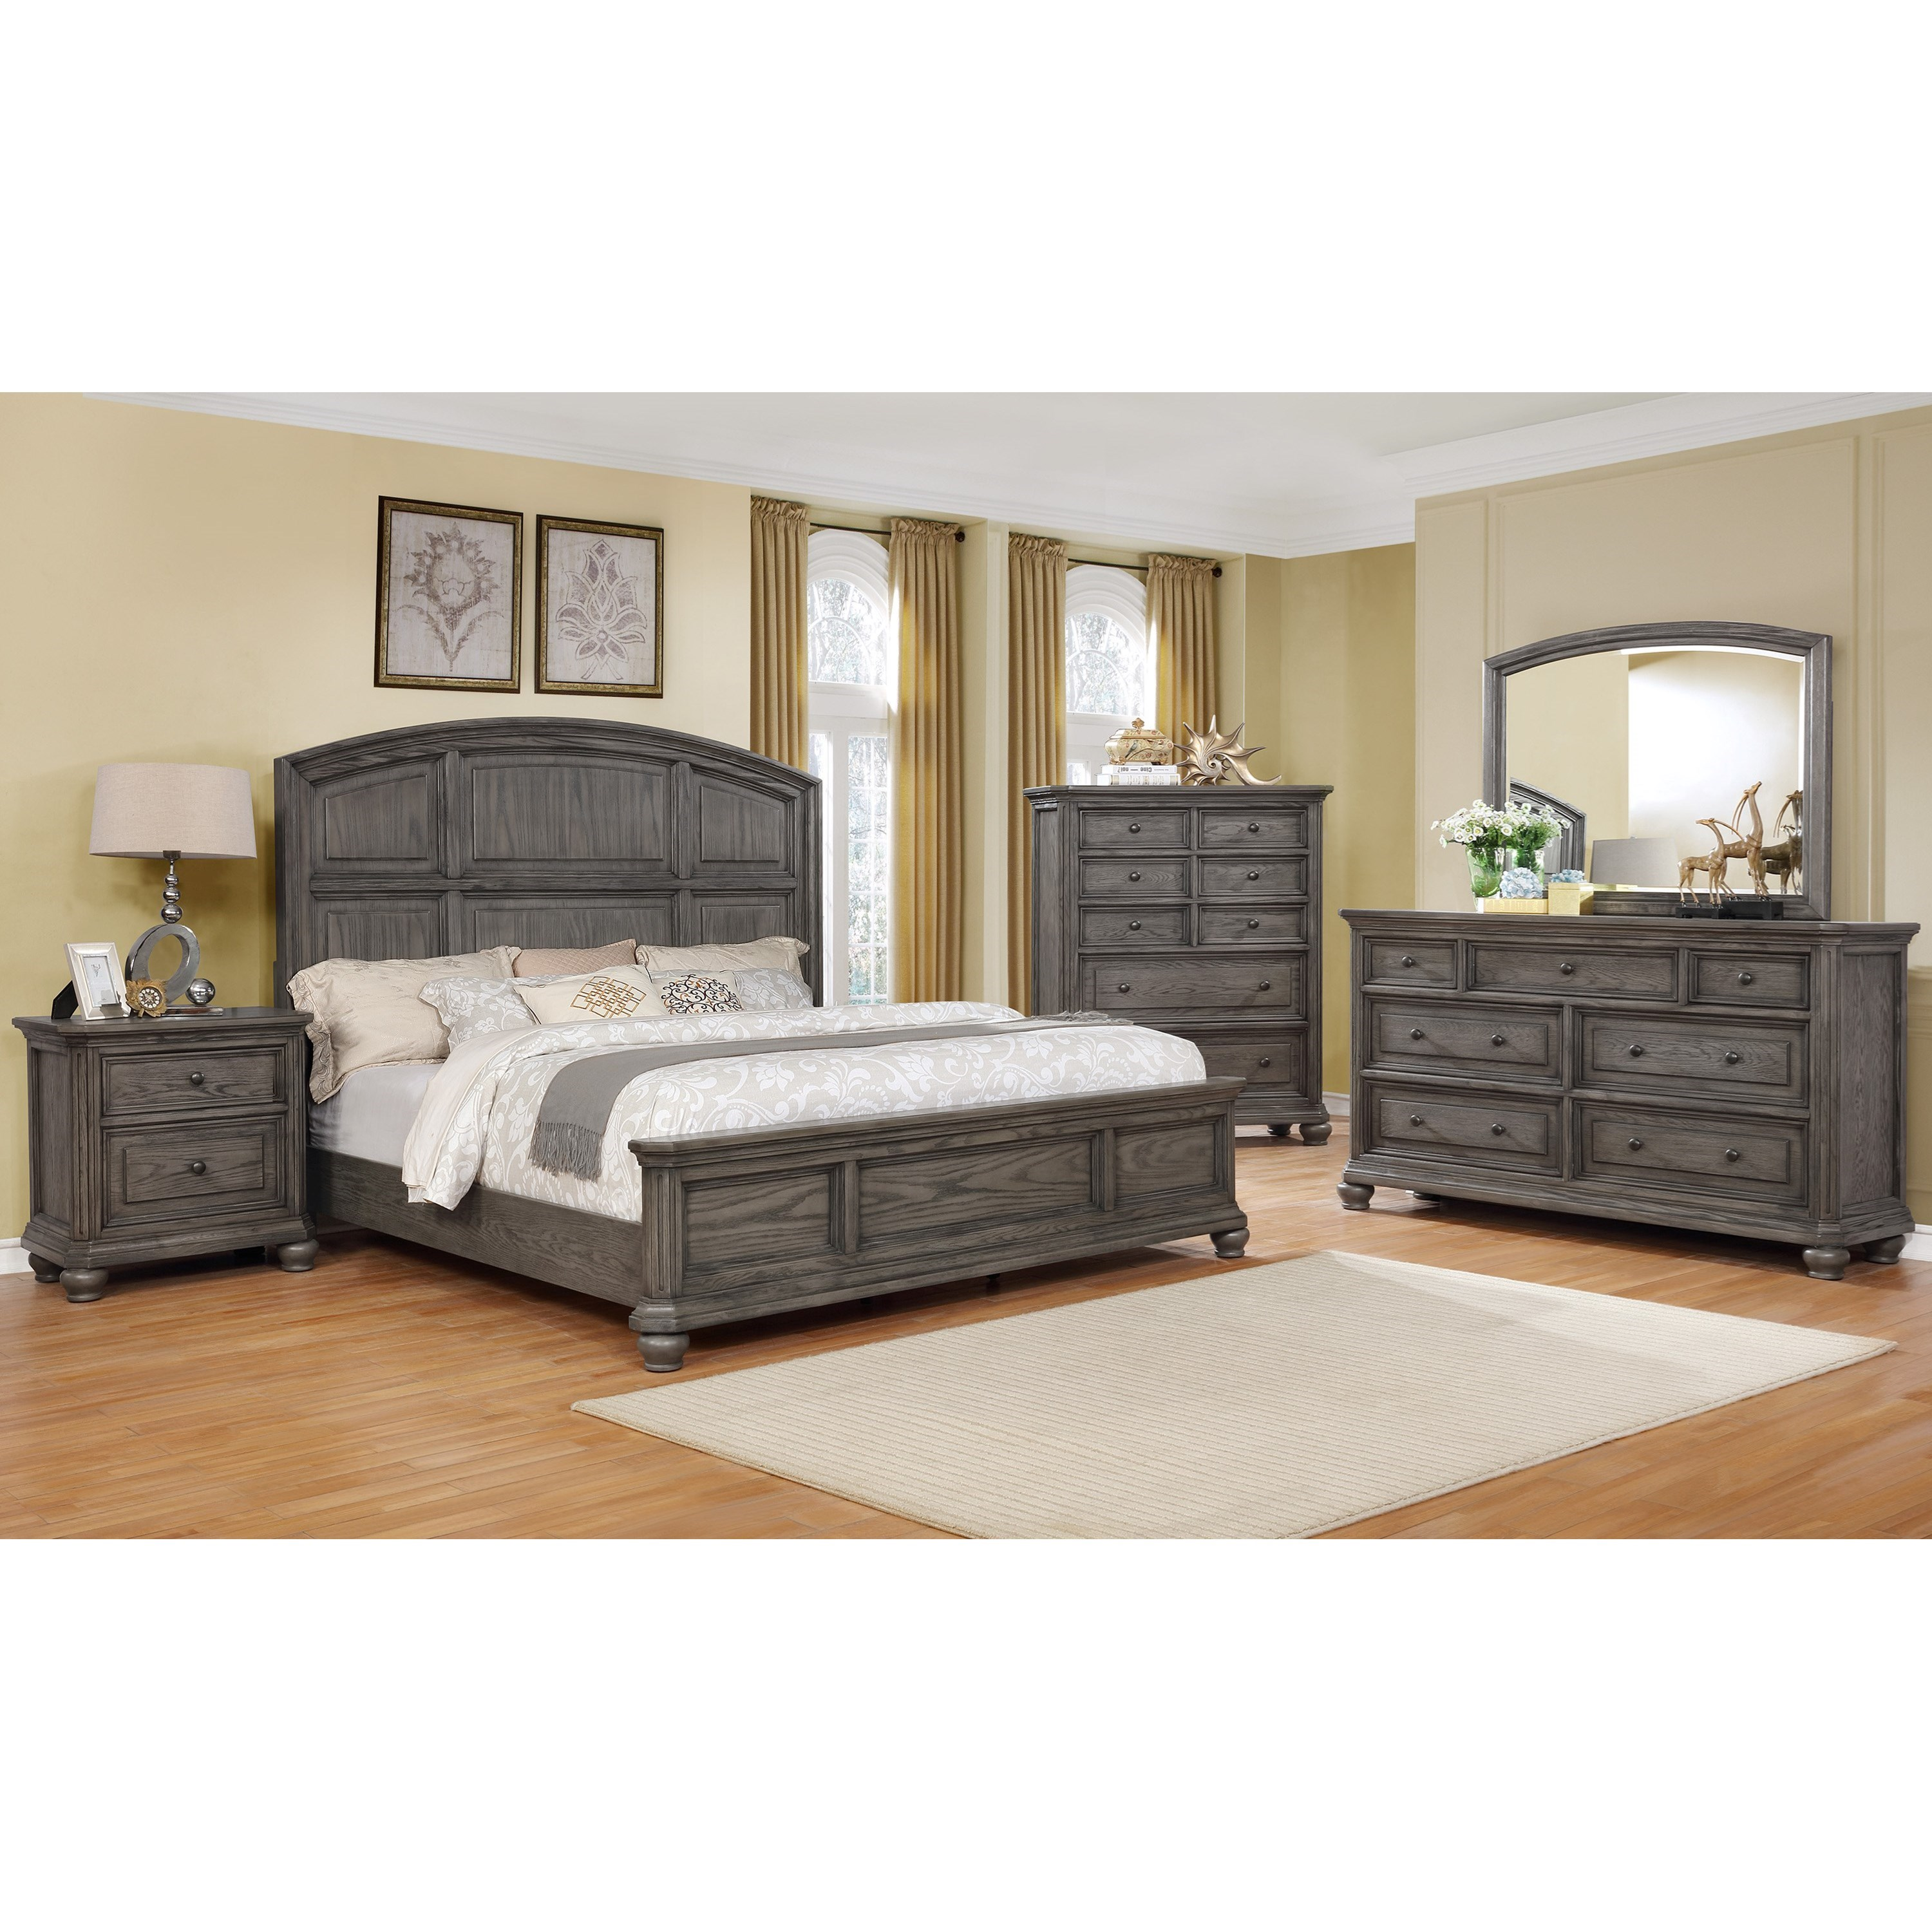 Lavonia King Bedroom Group by Crown Mark at Northeast Factory Direct